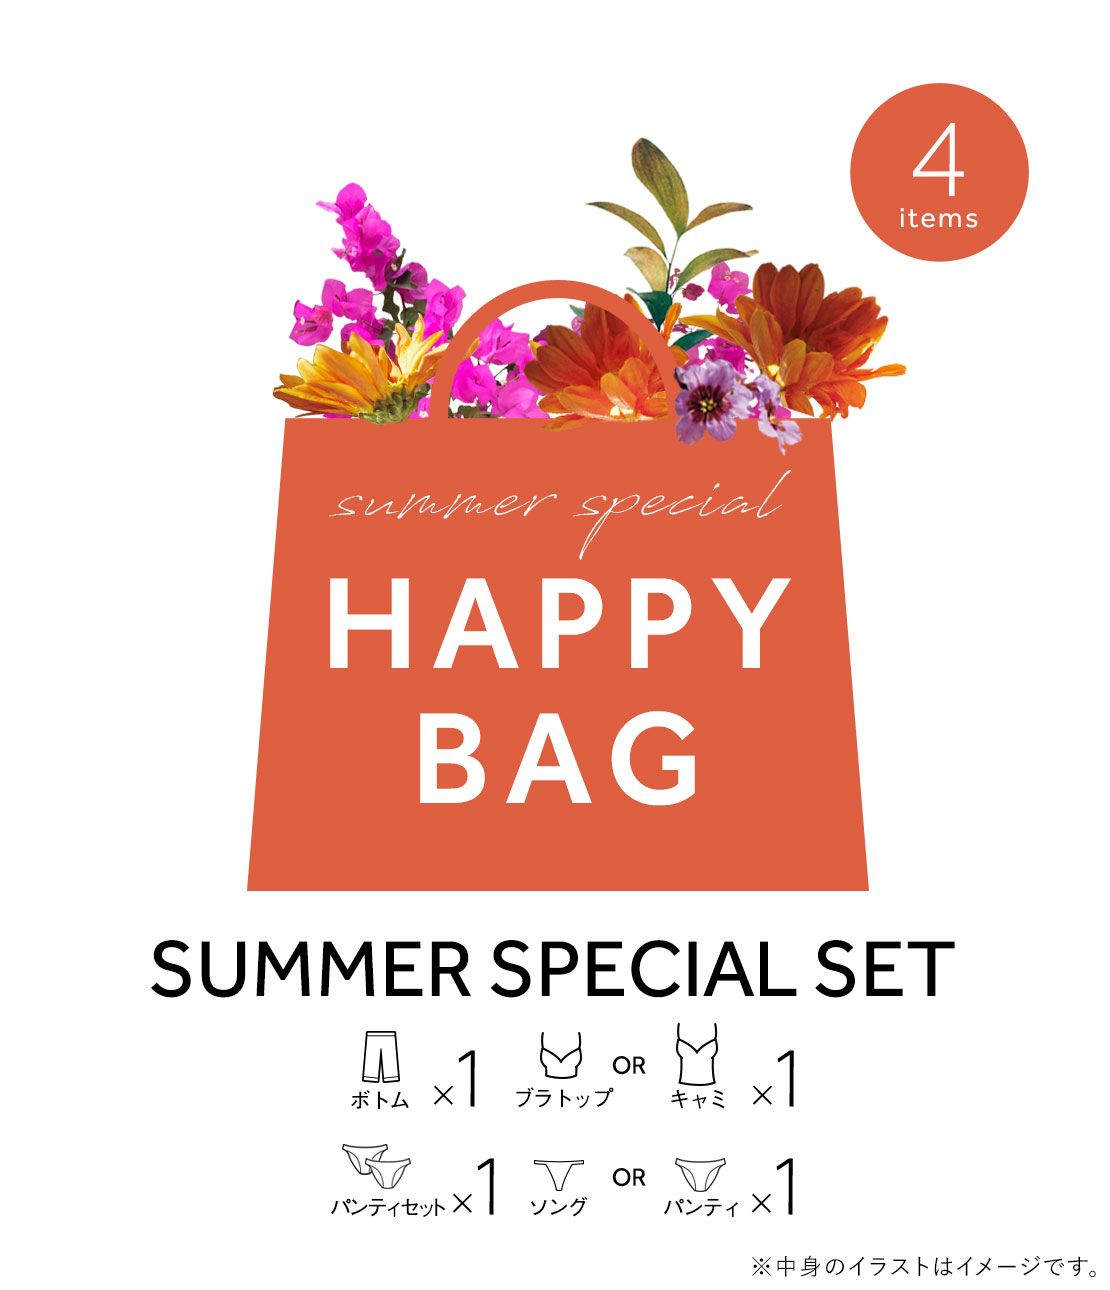 HAPPY BAG (Summer Special Set)